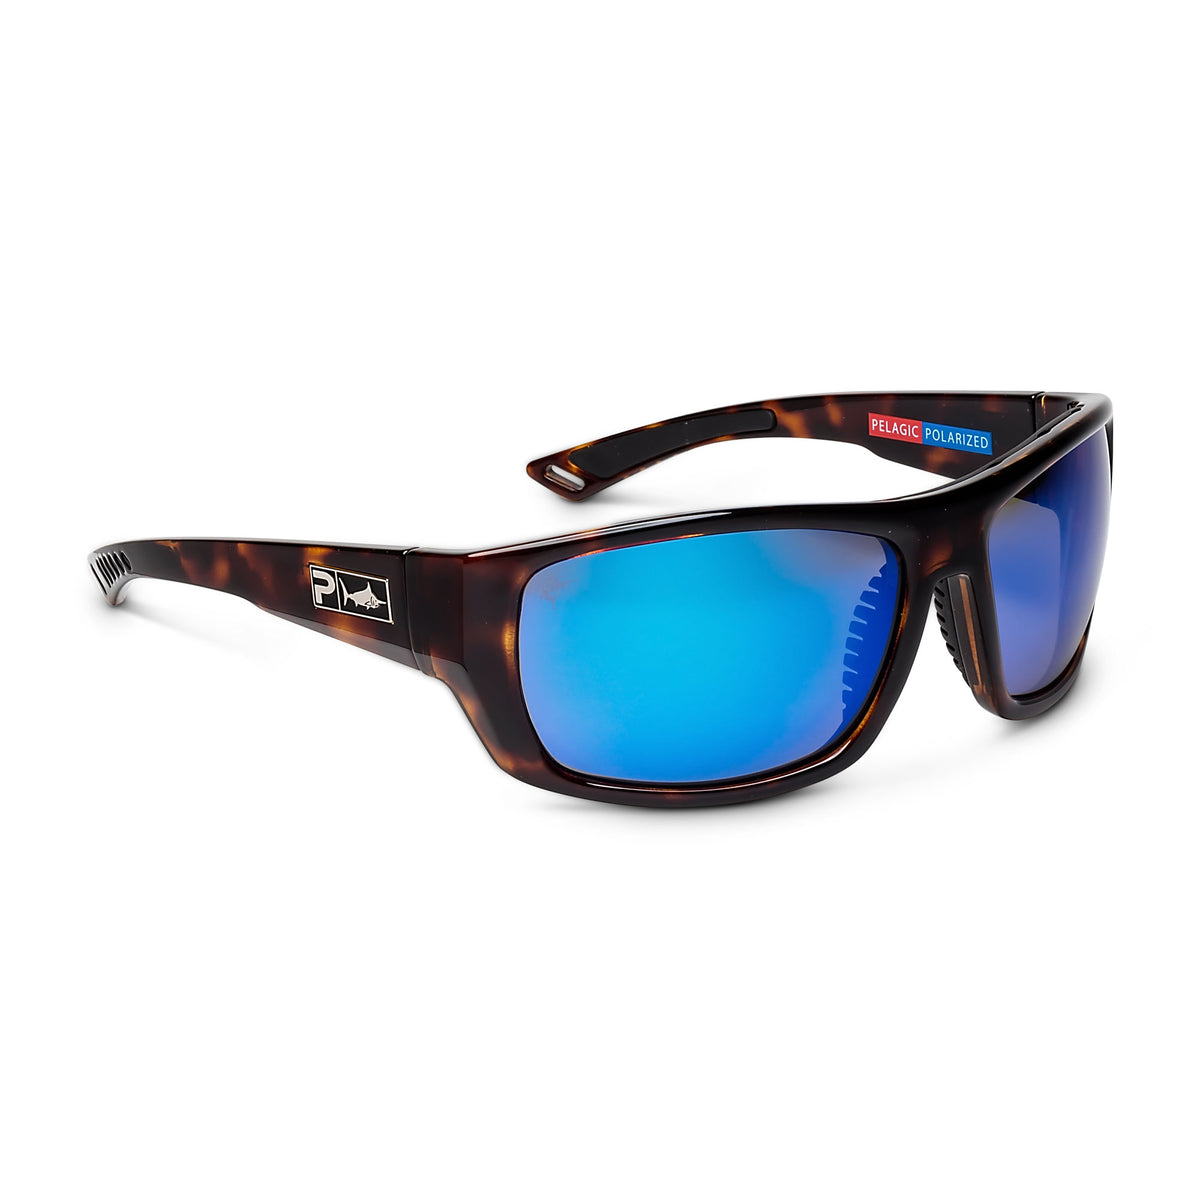 Pursuit - Polarized Mineral Glass™ Big Image - 1